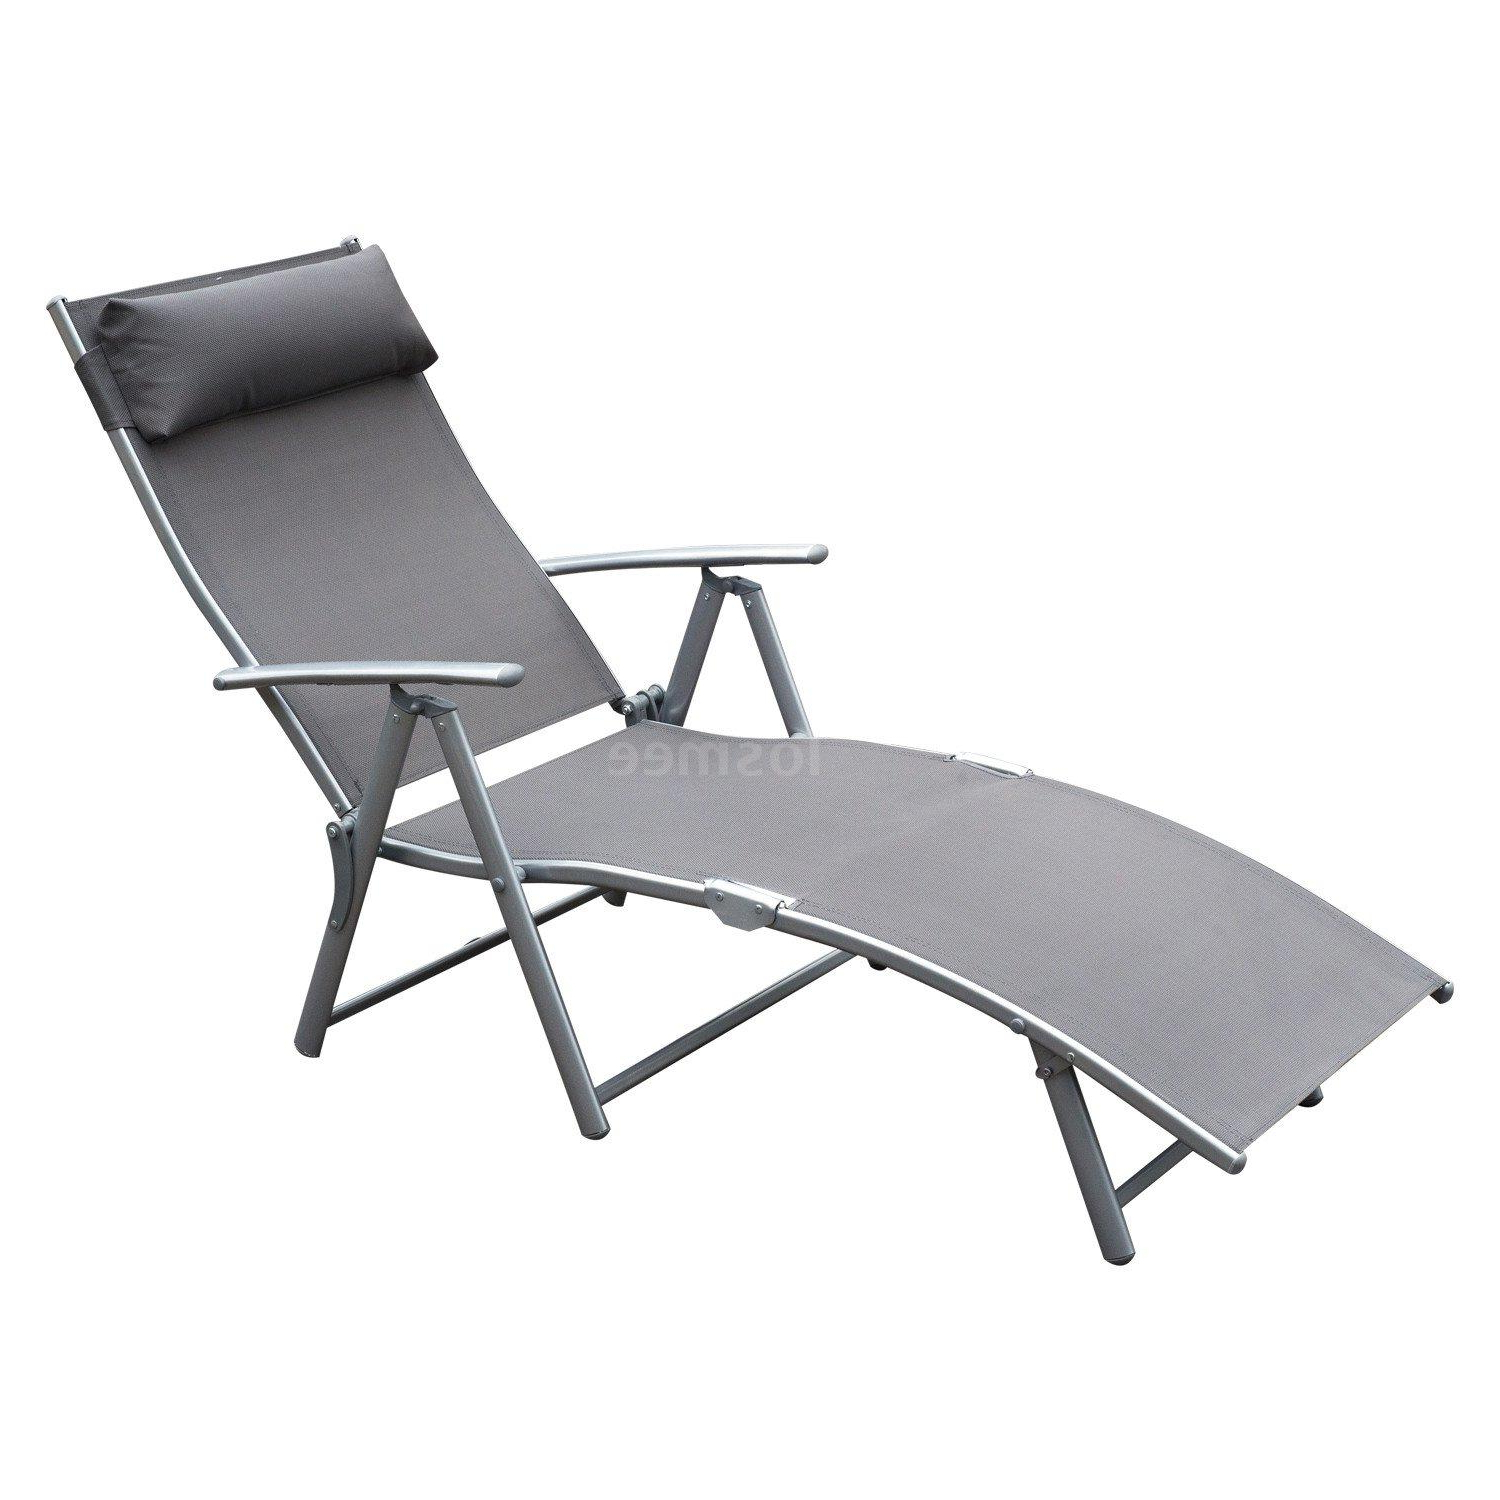 Details About Steel Sling Fabric Outdoor Folding Chaise Lounge Chair Recliner – Grey Y4l1 Throughout Famous Black Sling Fabric Adjustable Chaise Lounges (View 23 of 25)